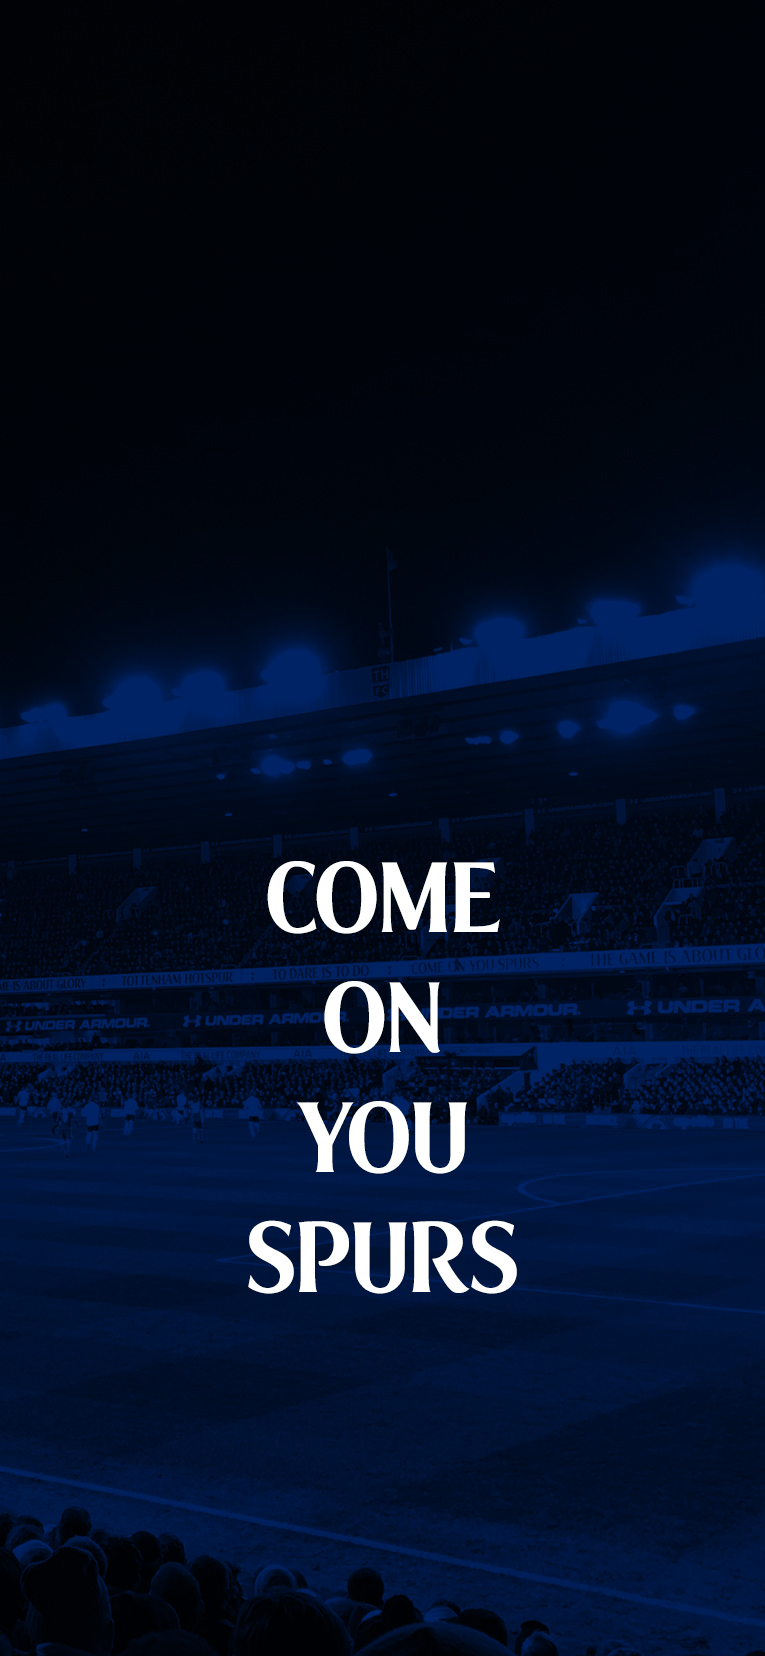 Spurs Wallpaper Ios Posted By Michelle Thompson